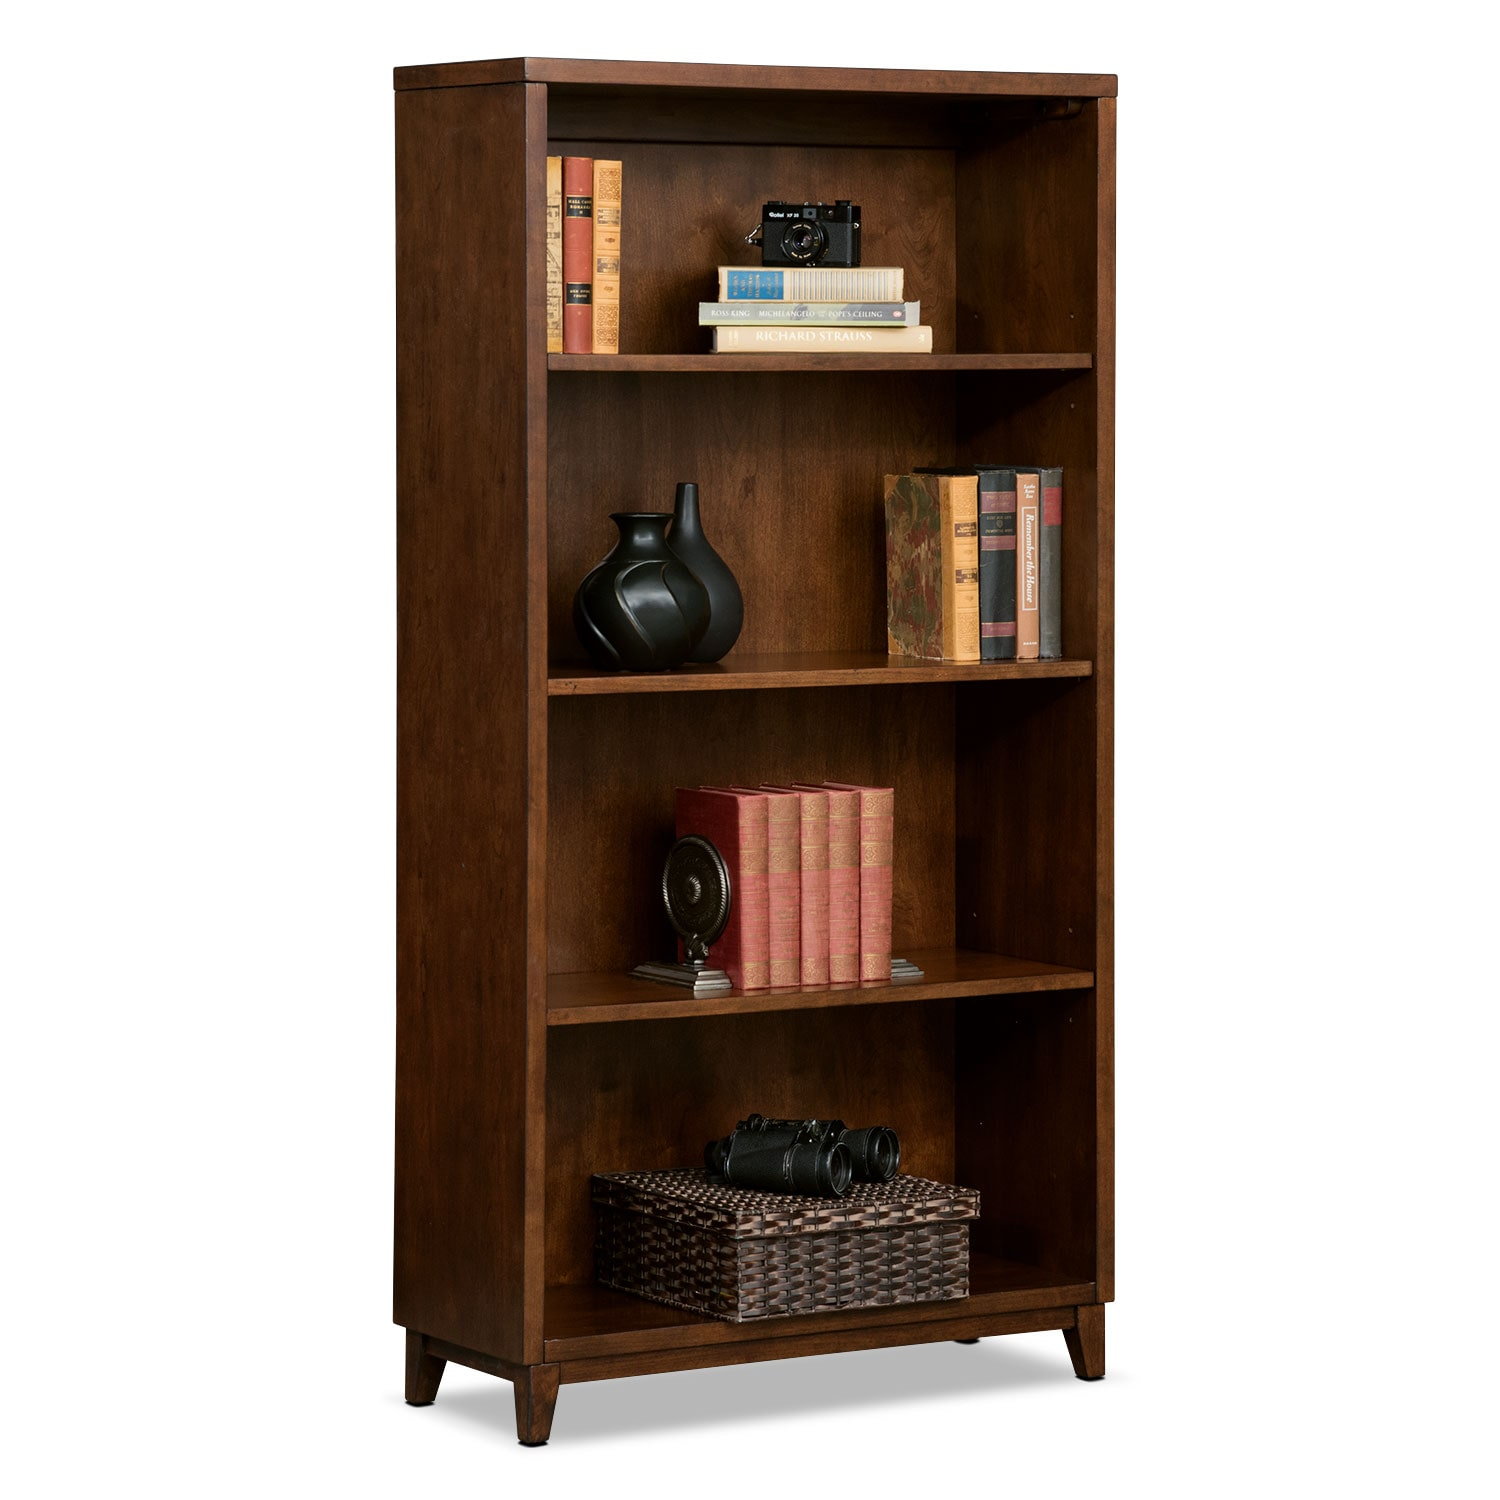 "Home Office Furniture - Oslo Cherry 58"" Bookcase"